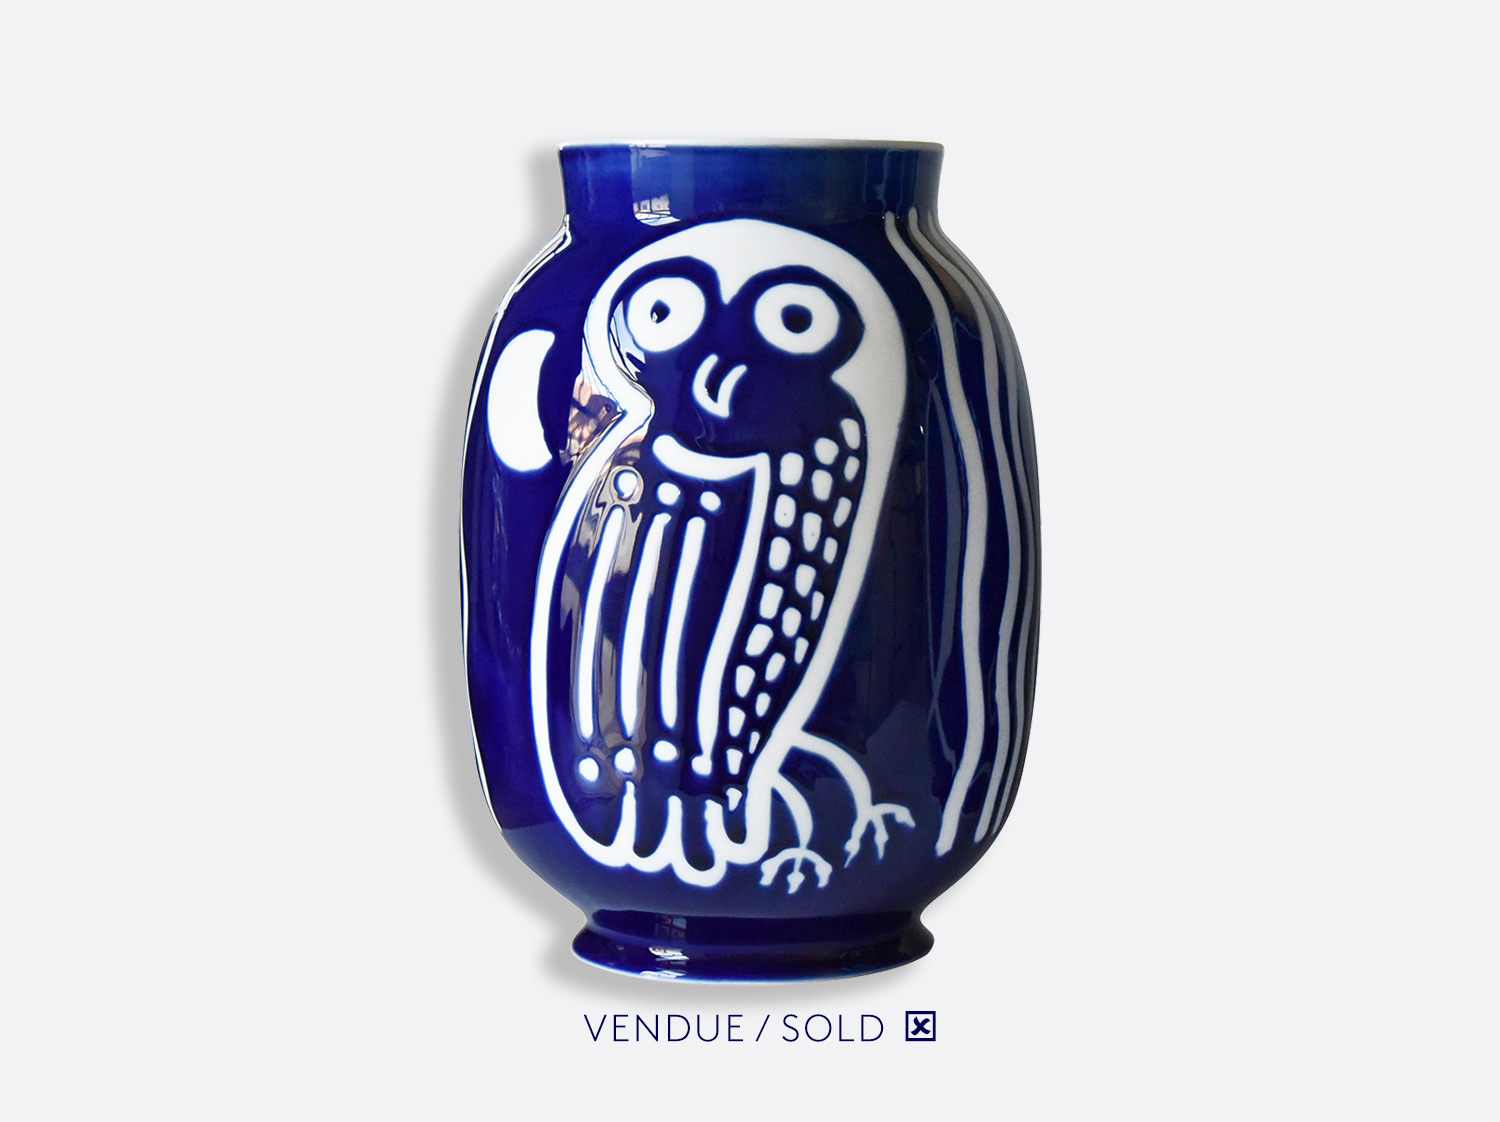 Vase toscan n°8 en porcelaine de la collection Atelier Buffile - Algues et Poissons Bernardaud